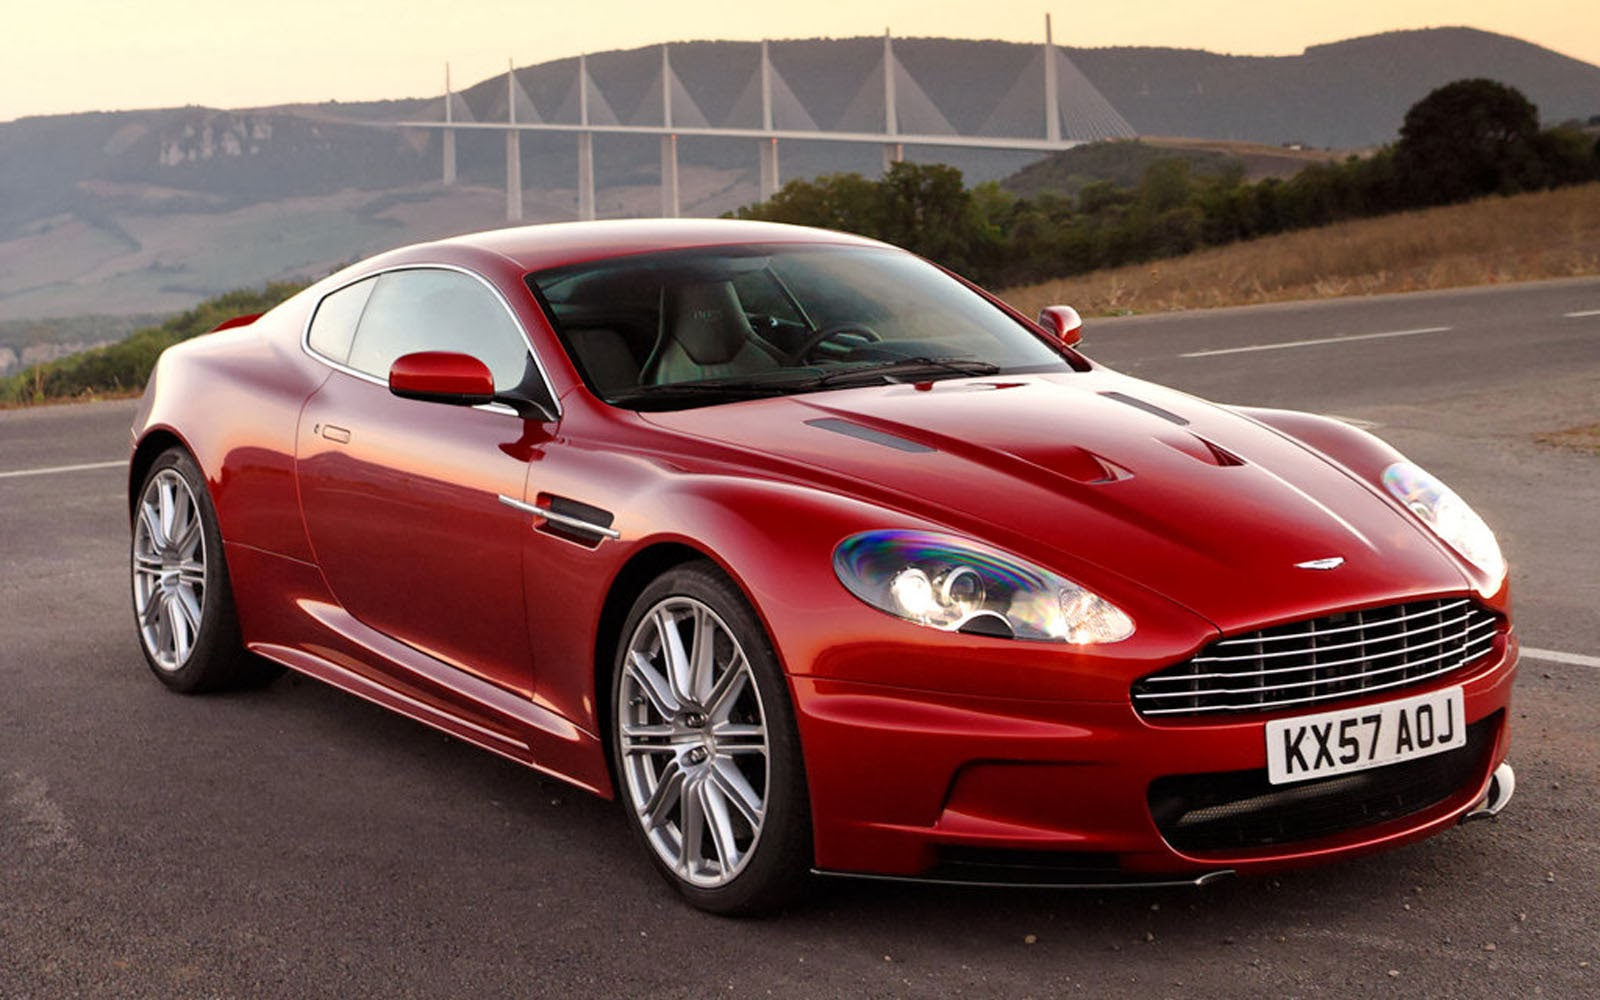 Tag Aston Martin DBS Wallpapers Backgrounds PhotosImages and 1600x1000